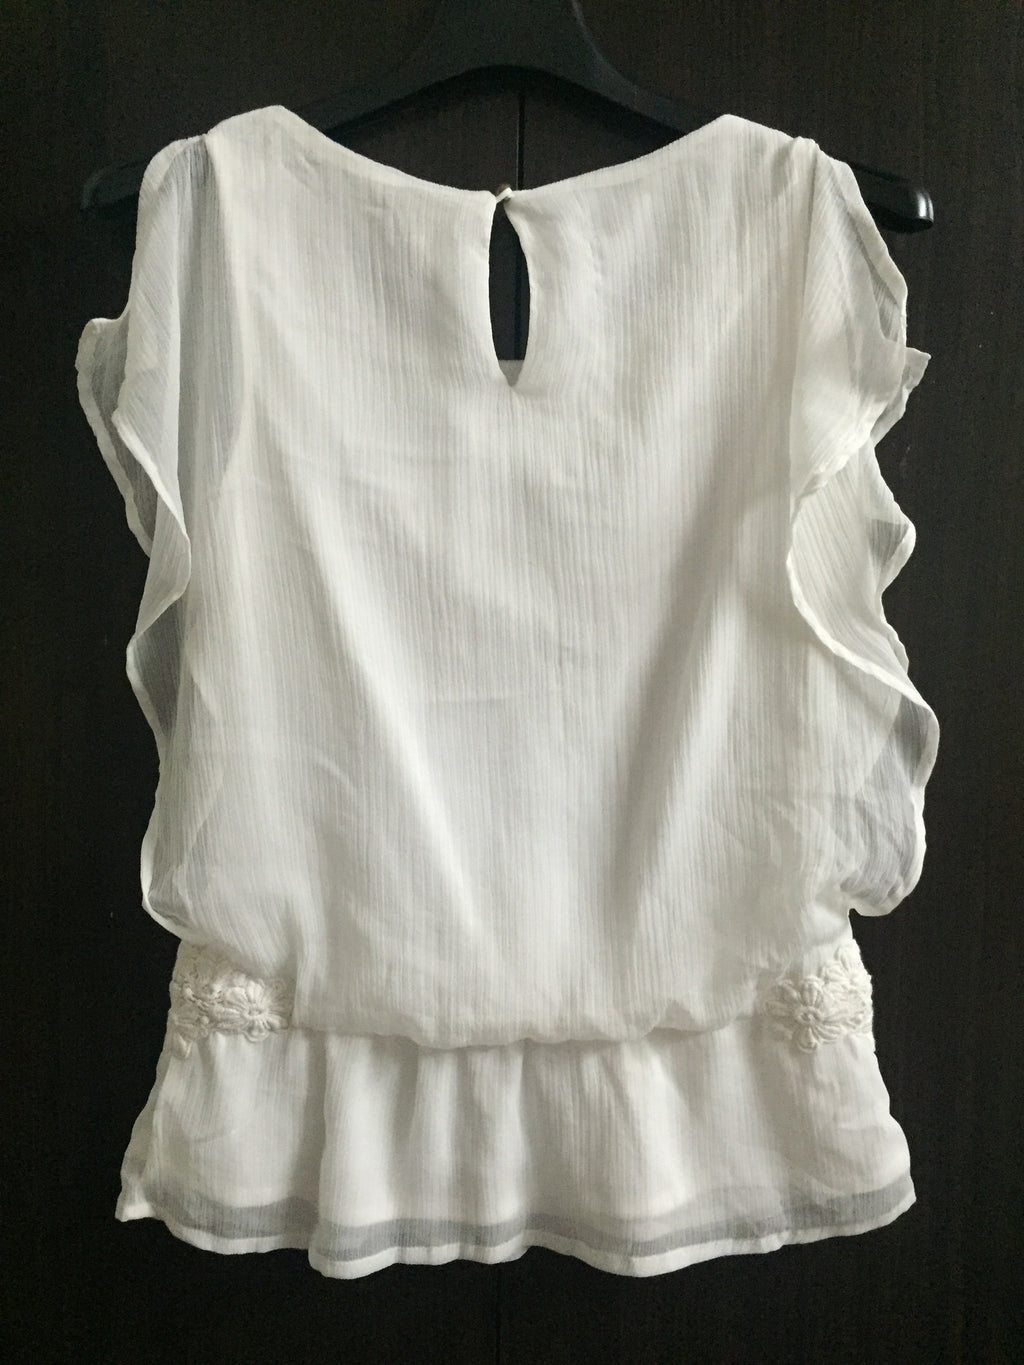 Pretty White Sleeveless Top with flowers on sides